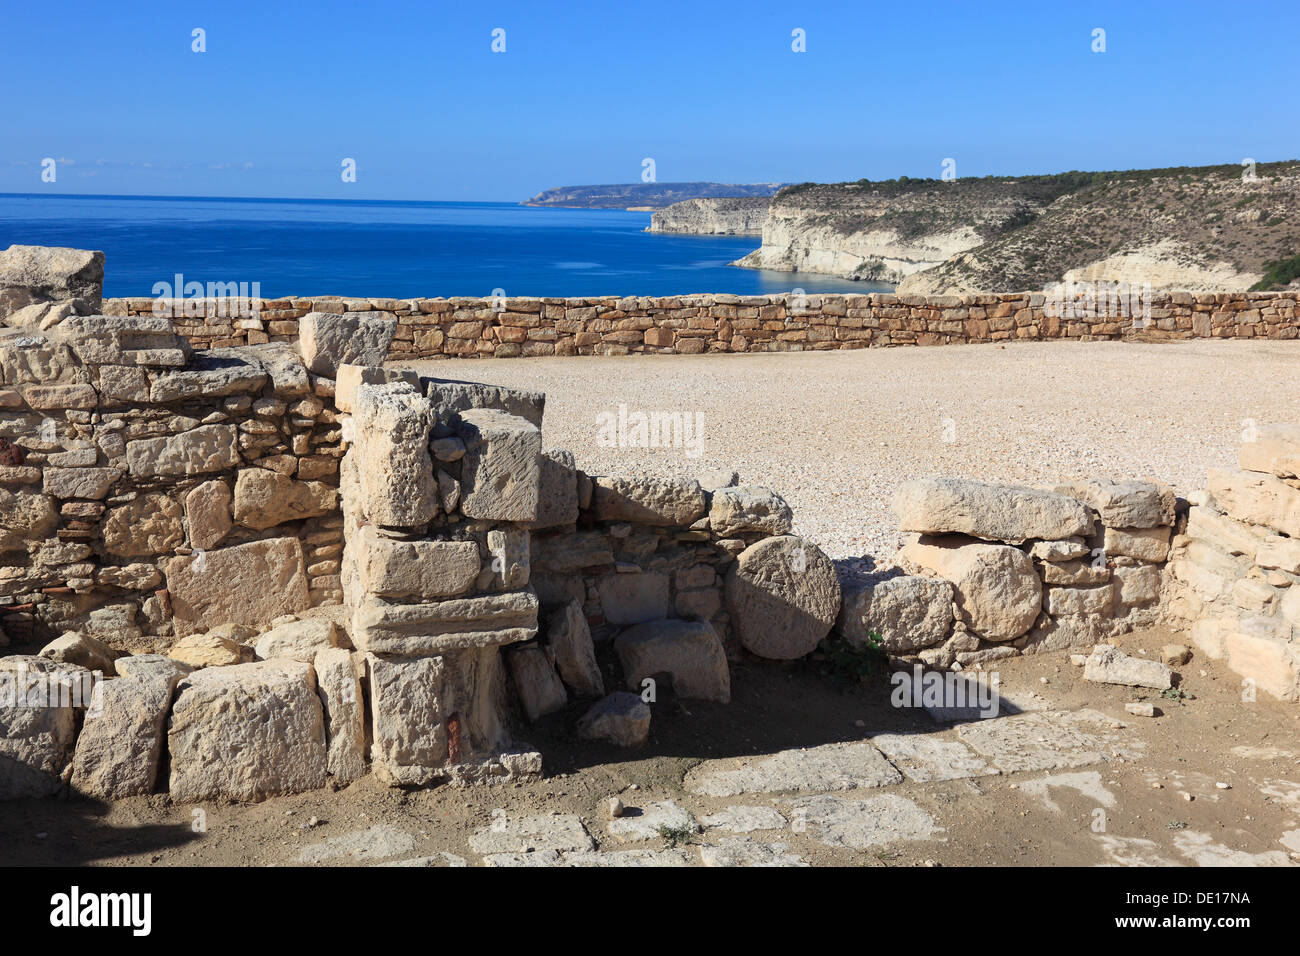 Cyprus, Kourion, Assyrian Ku-ri-i, ancient Greek, Latin, curium, historical, ancient archaeological site, ruins, sea, Mediterran - Stock Image